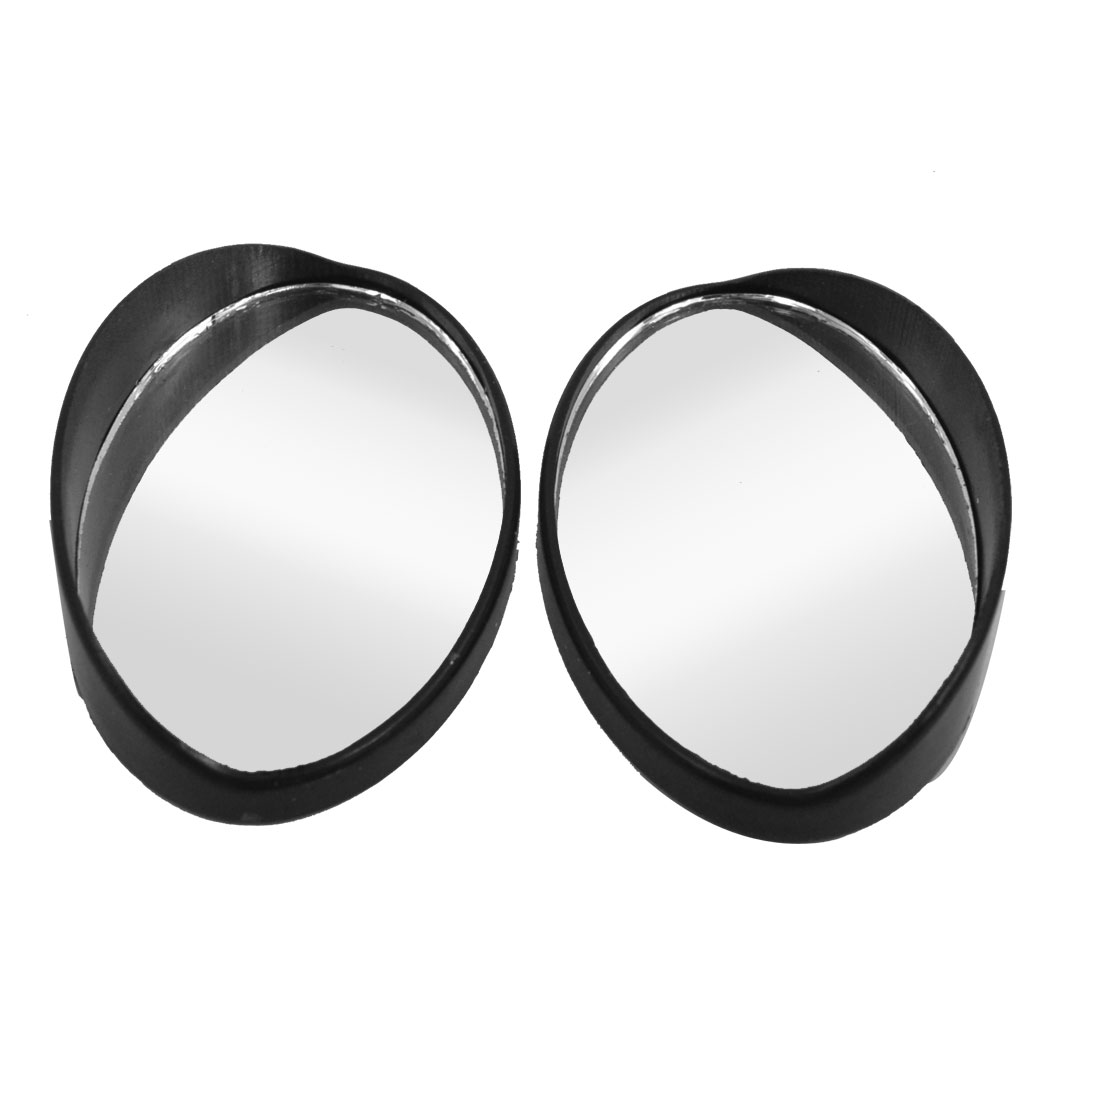 Car Vehicle Arch Wide Angle Convex Blind Spot Mirror Black 57mm x 35mm